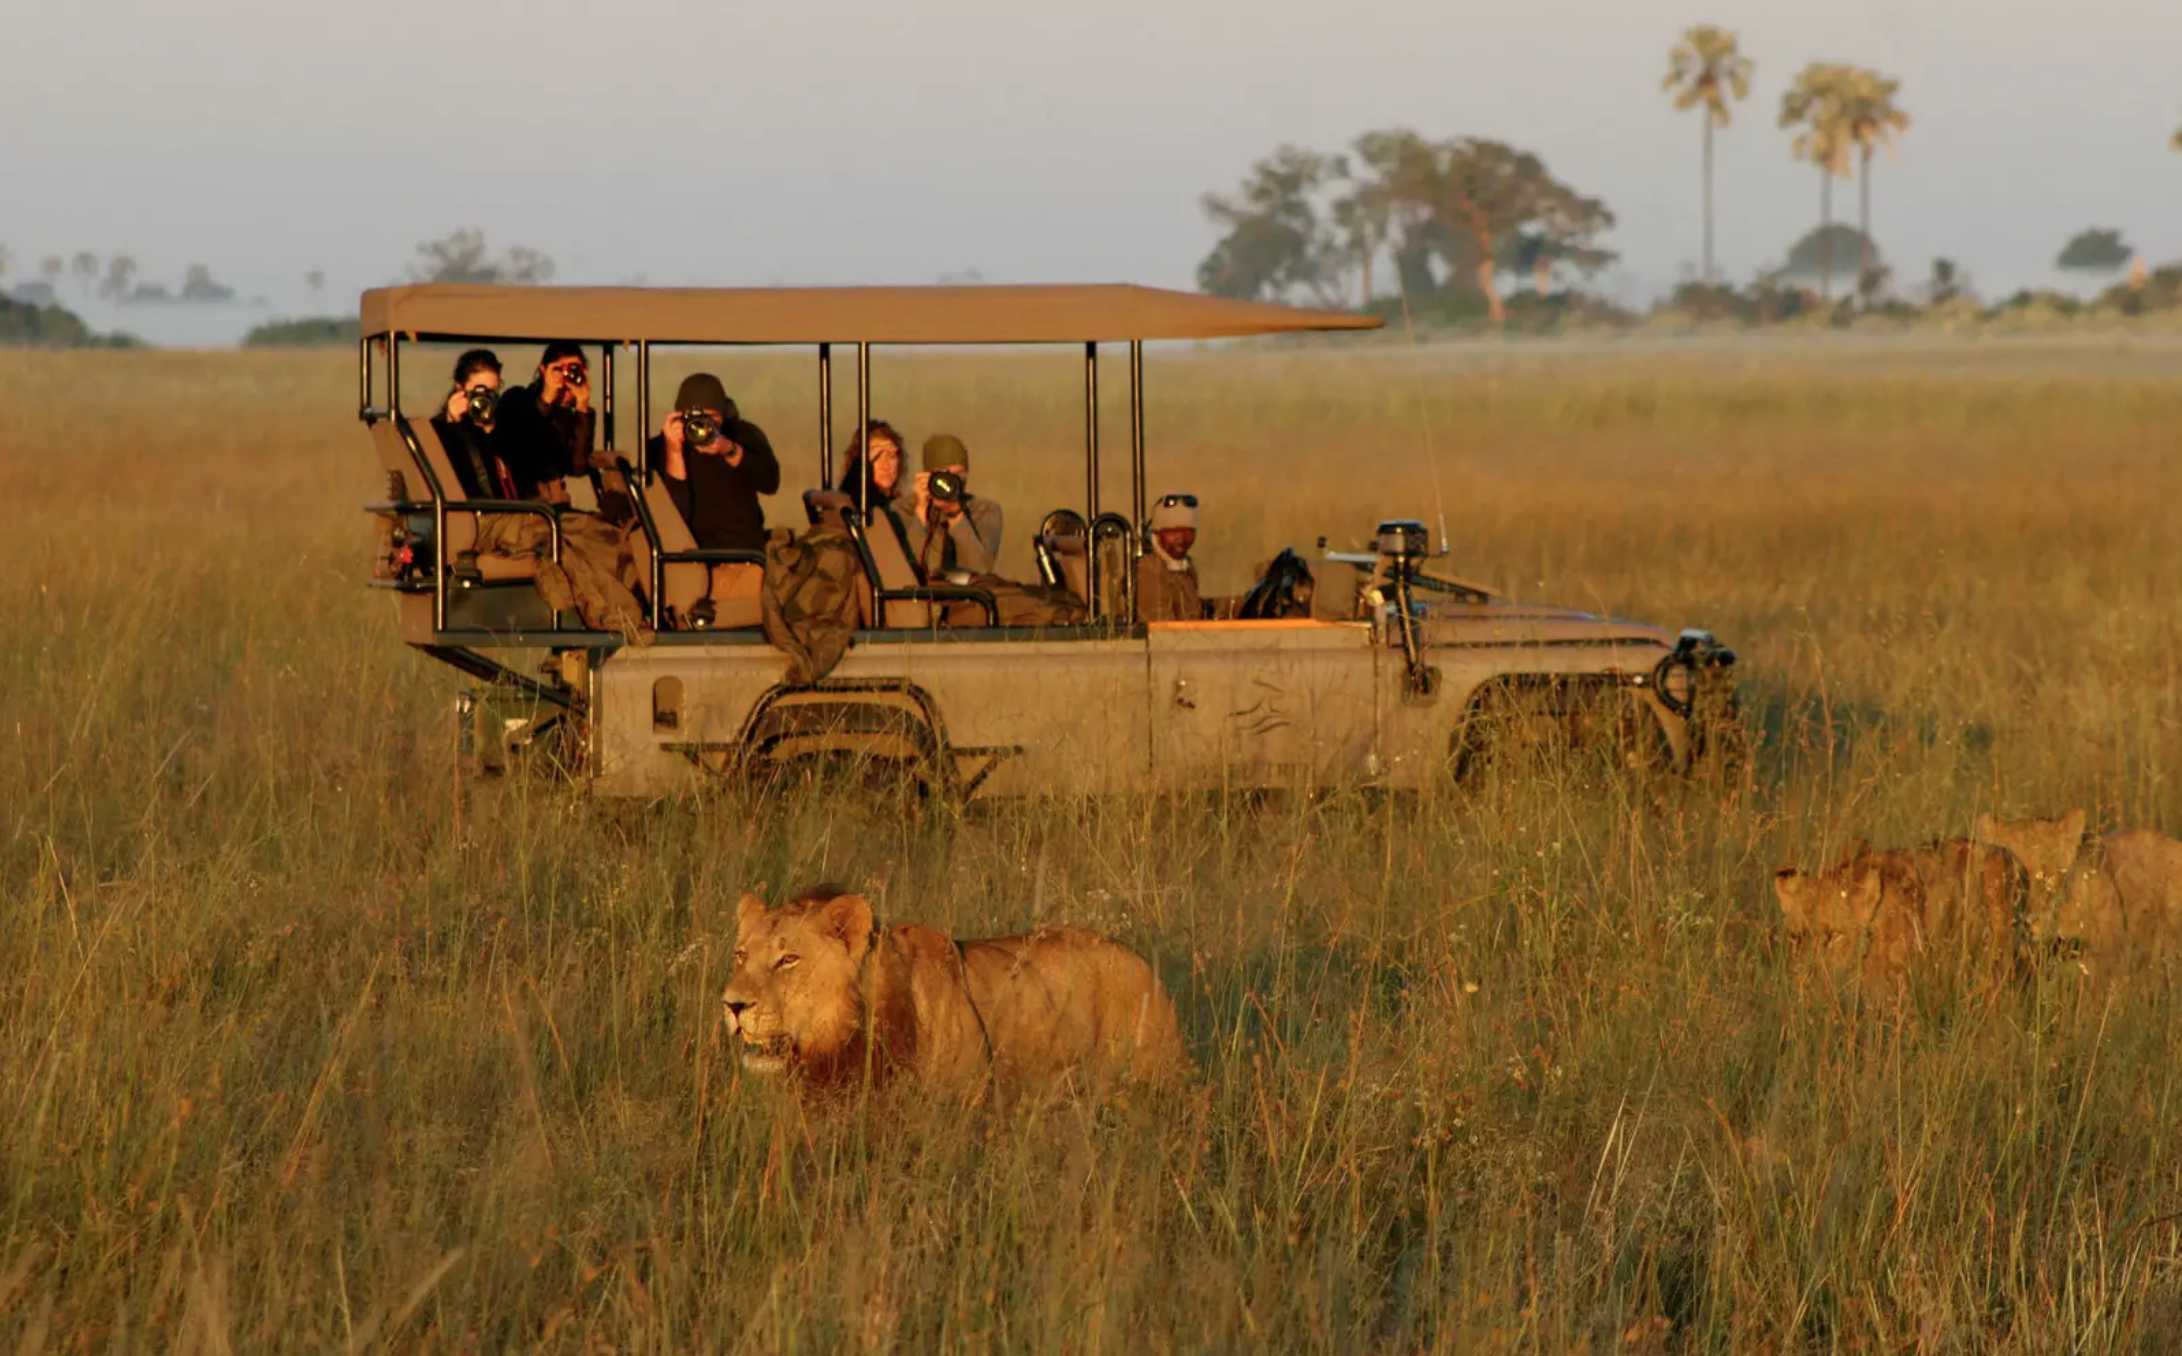 Rothschild Safaris